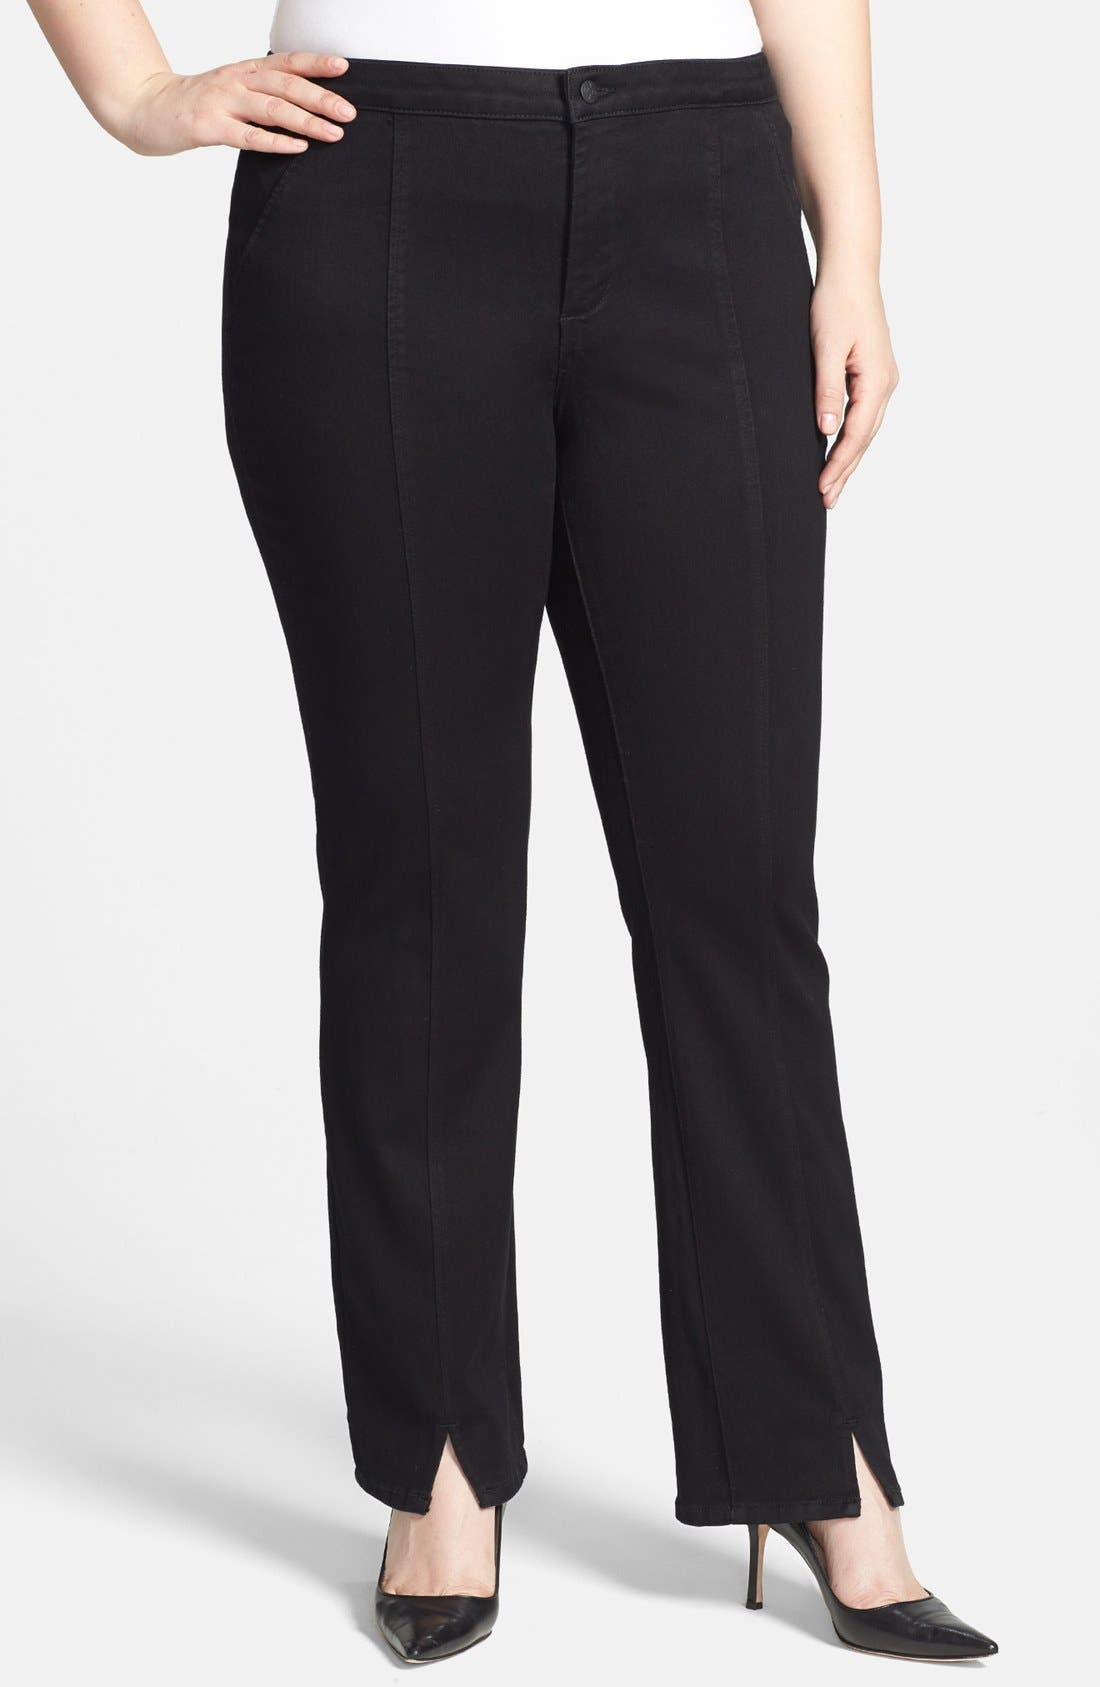 Alternate Image 1 Selected - NYDJ Seamed Stretch Straight Leg Jeans (Plus Size)